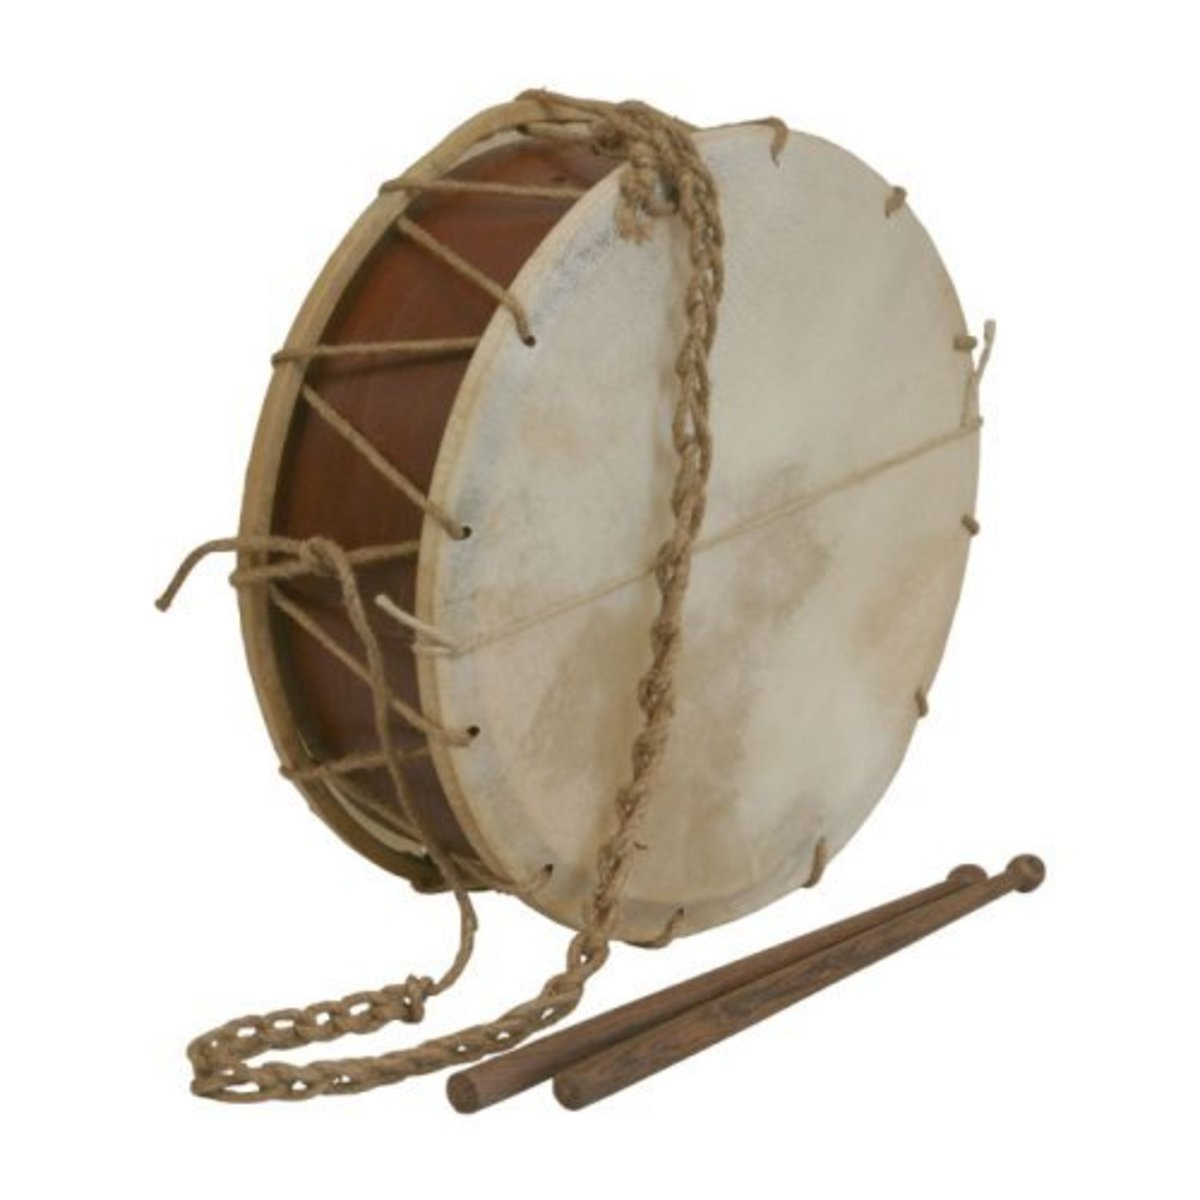 Tabor snare